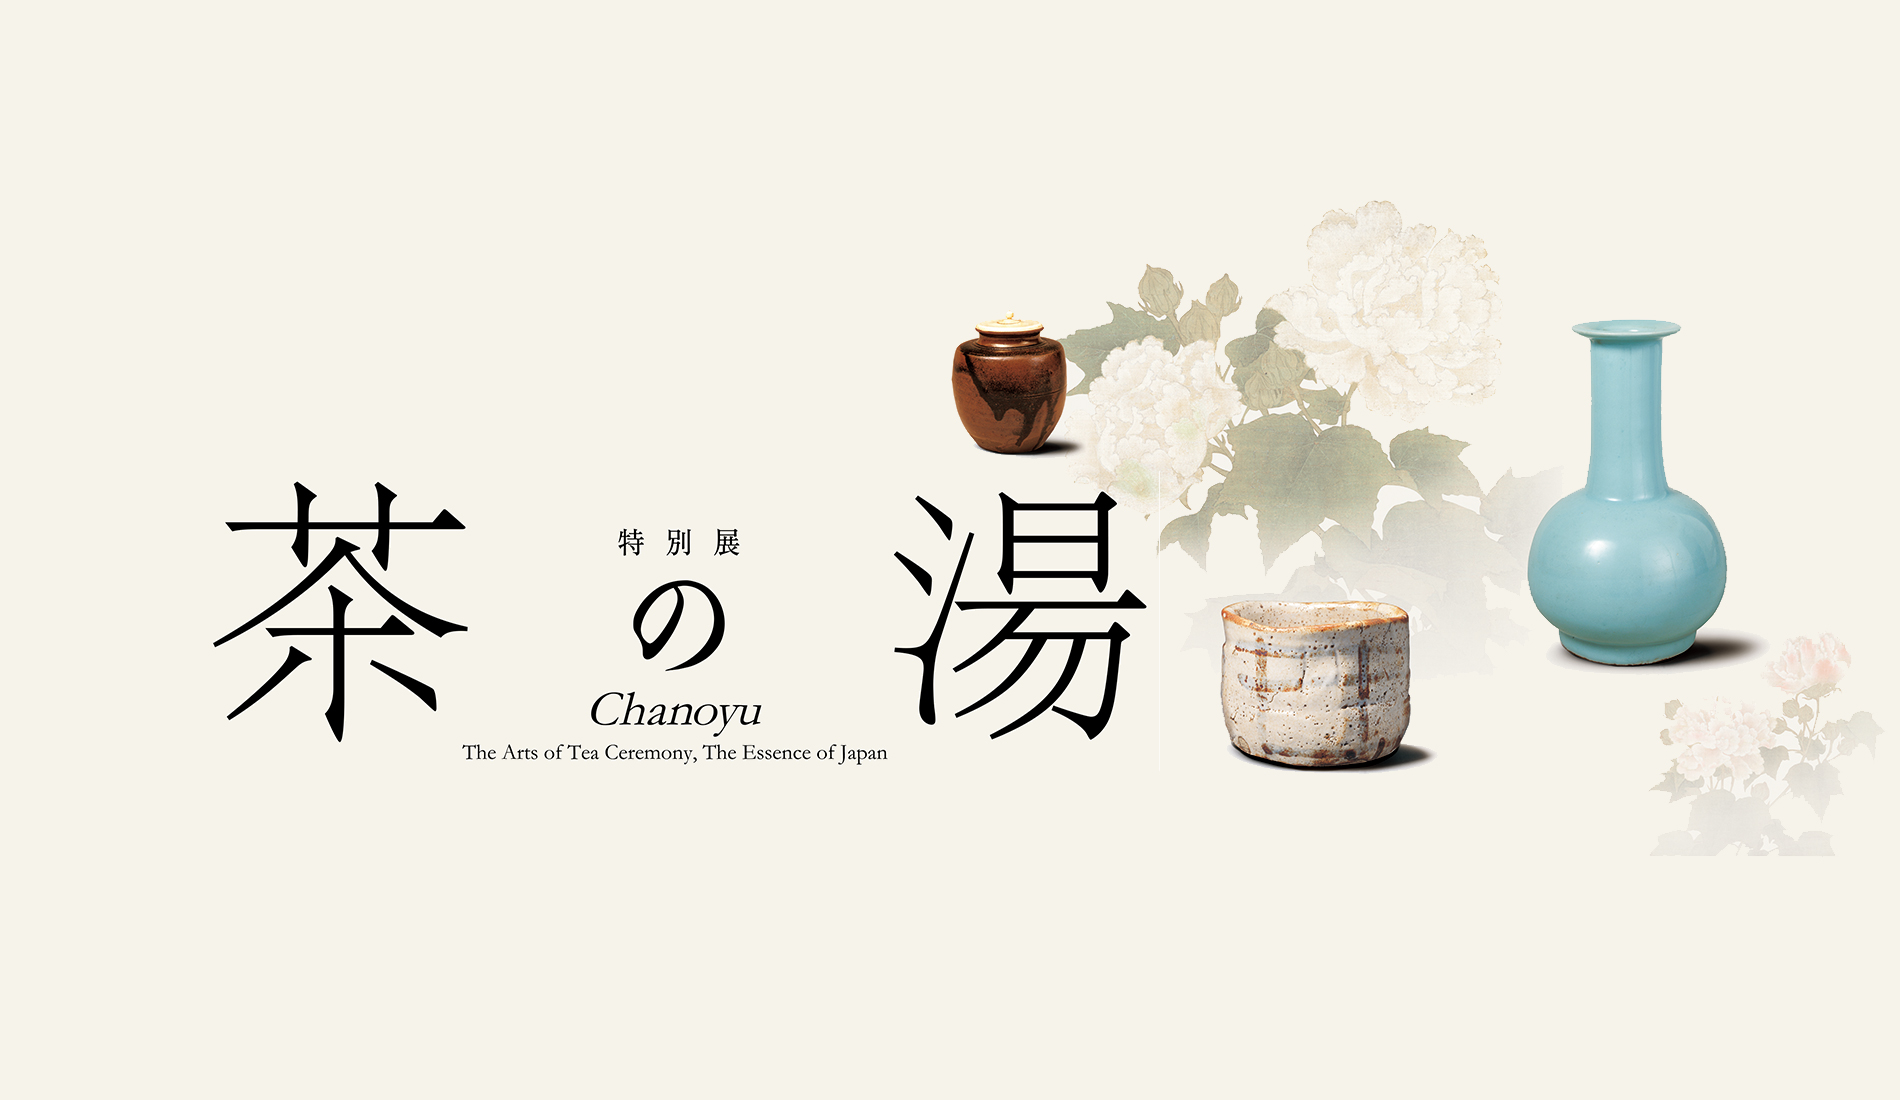 Chanoyu - The Arts of Tea Ceremony, The Essence of Japan